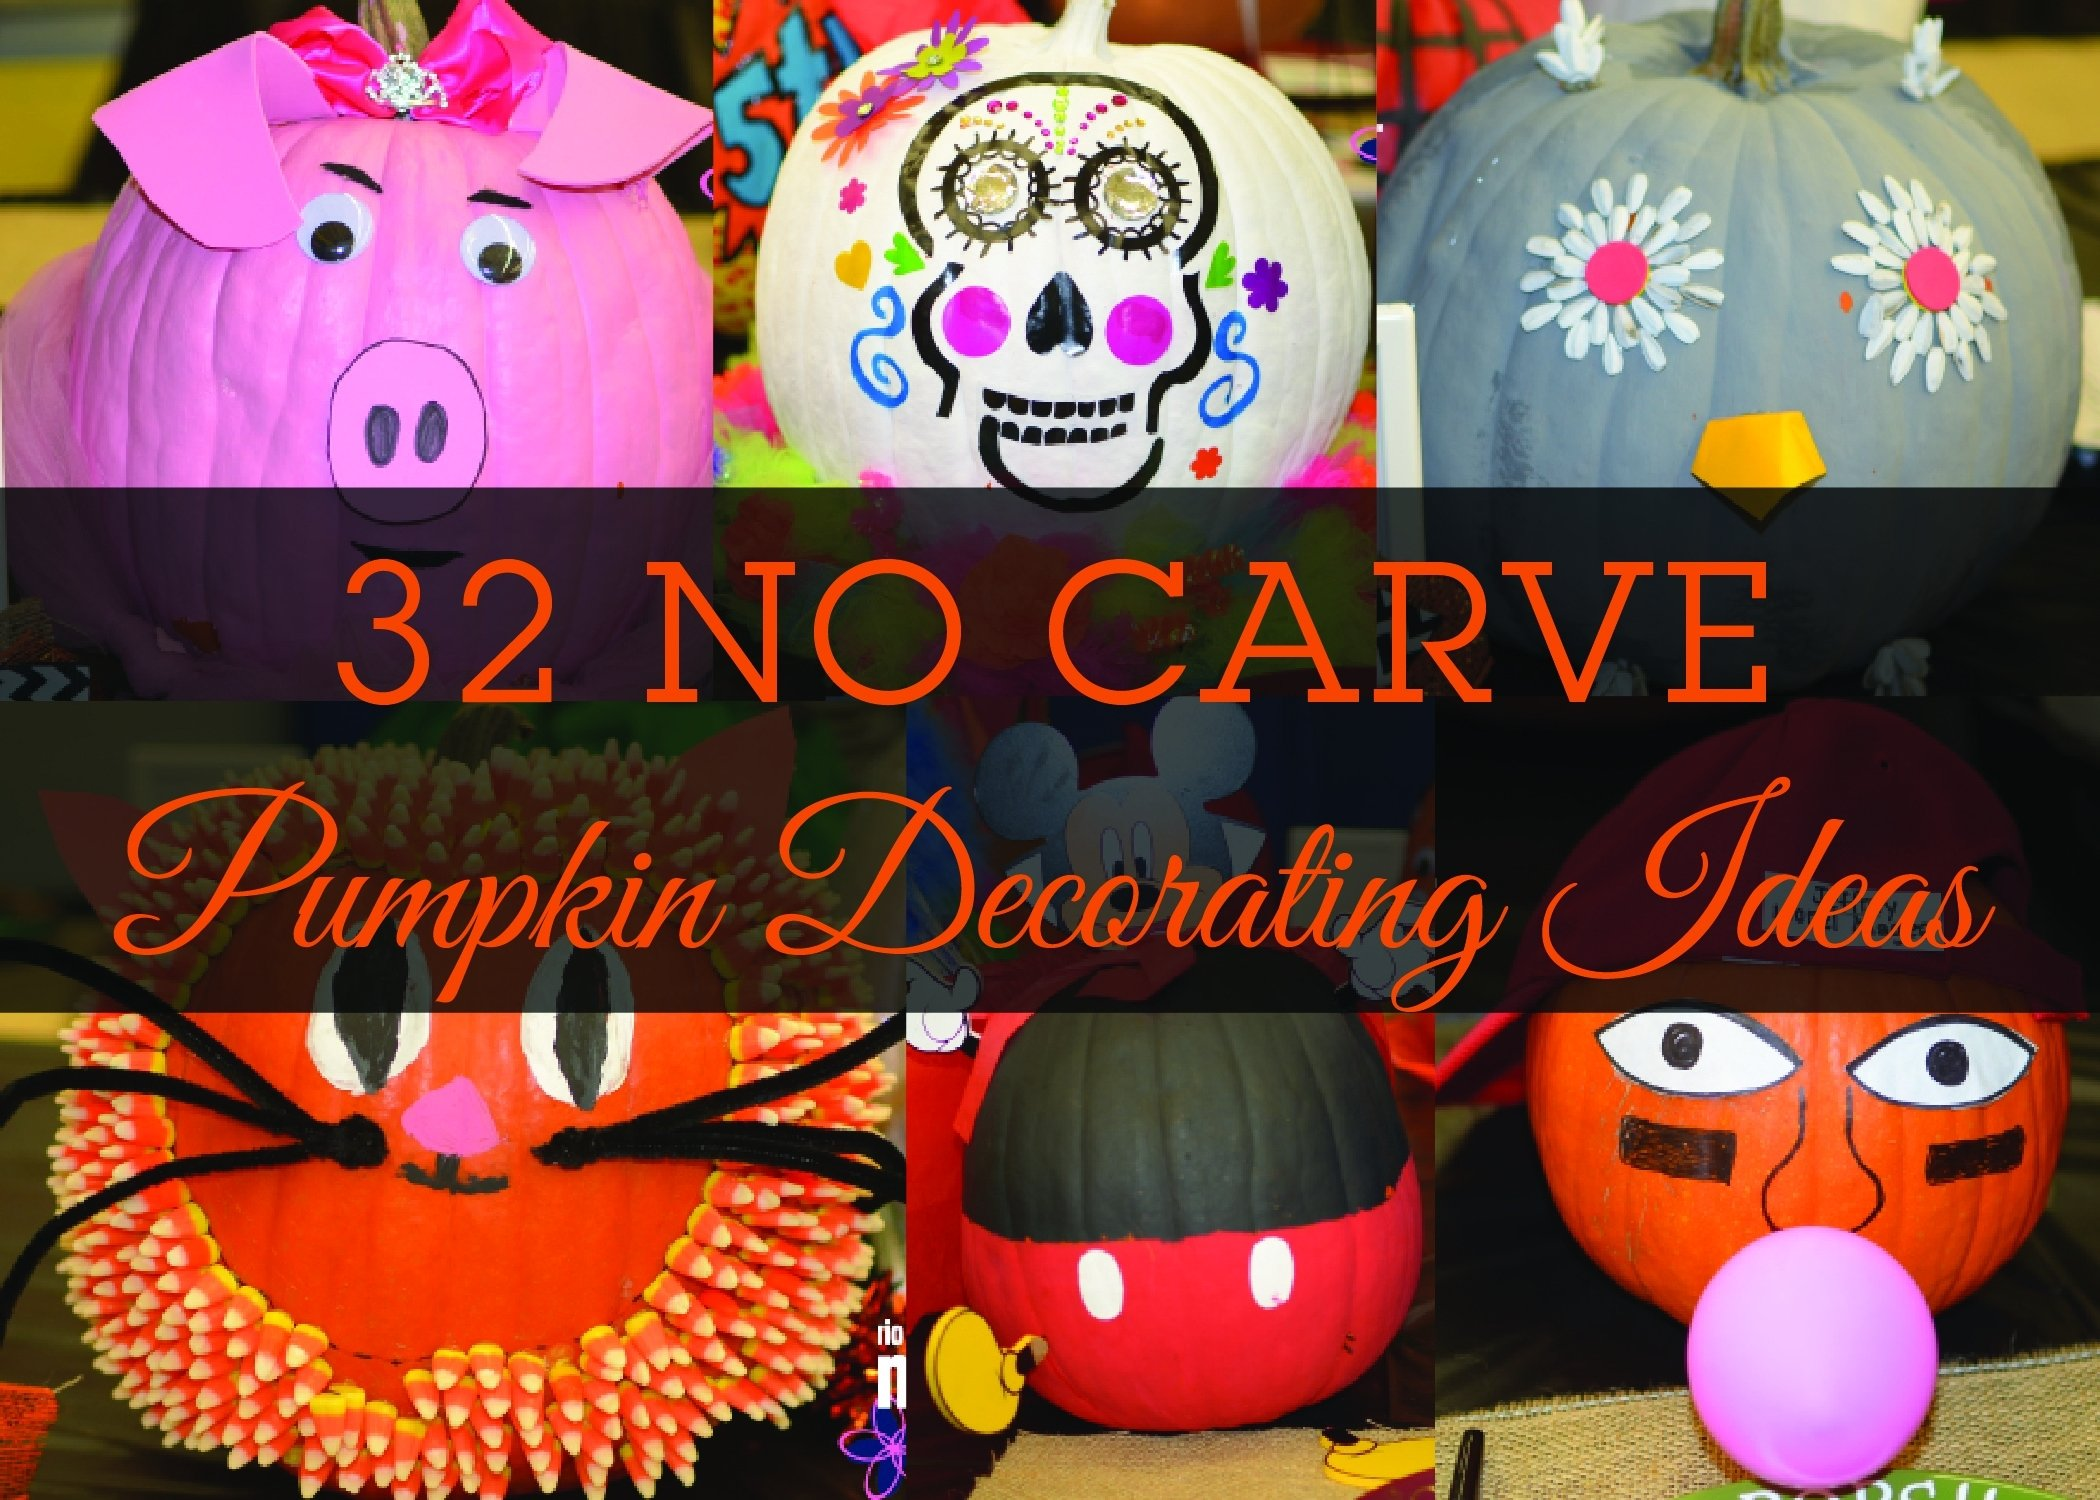 32 no carve pumpkin decorating ideas